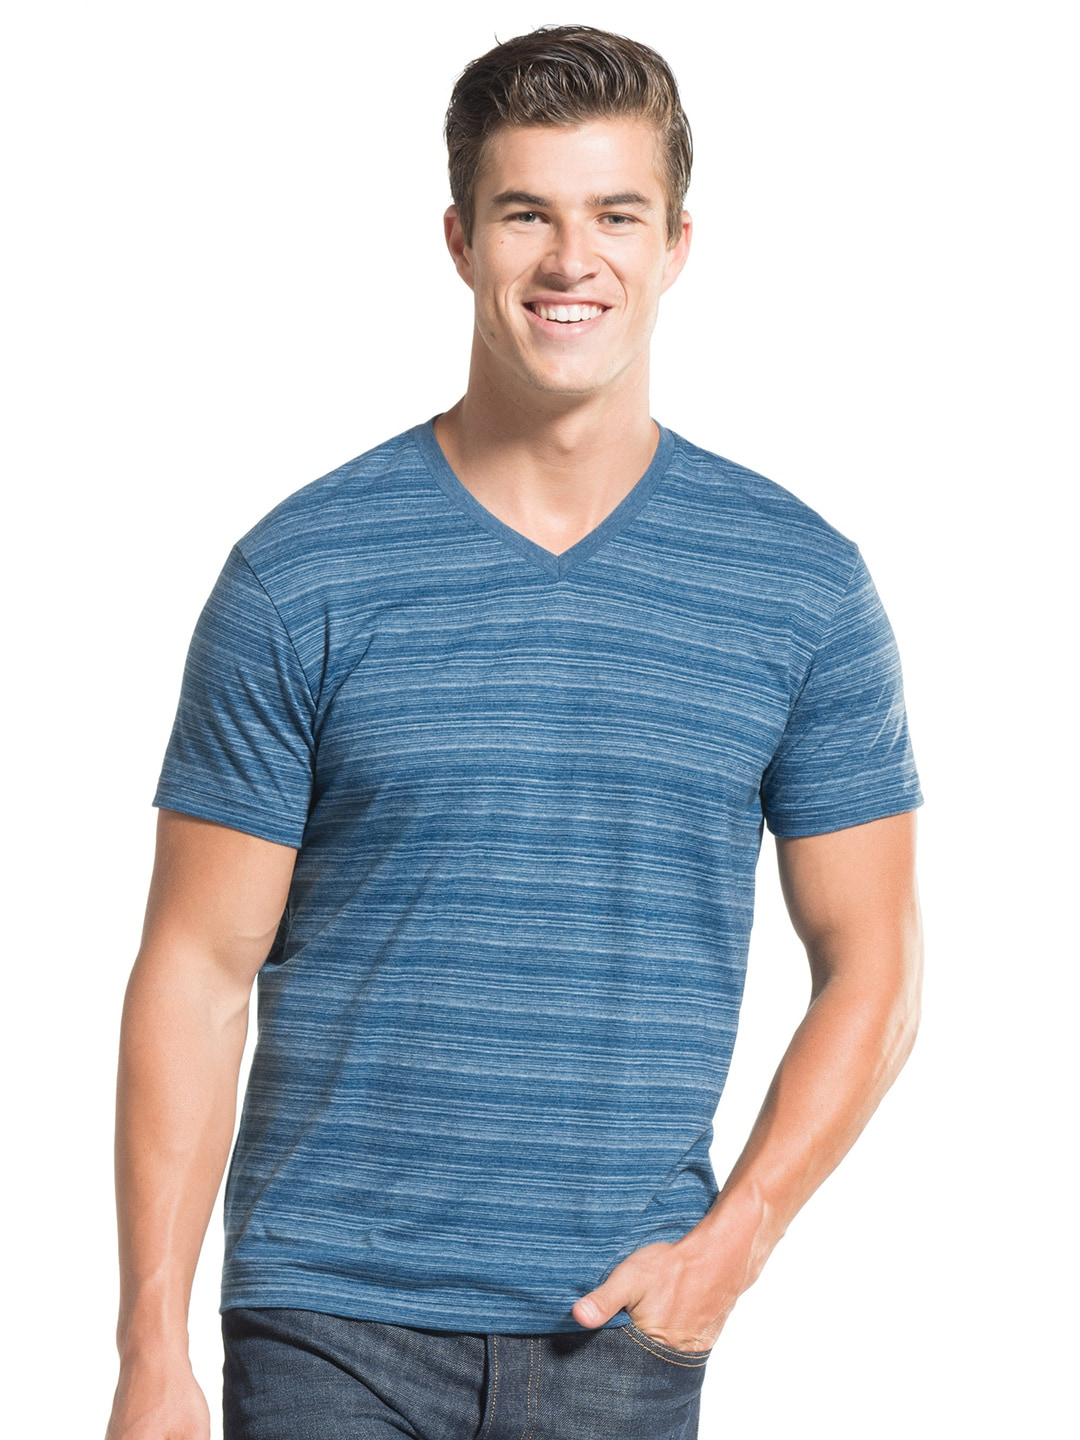 df9e560fc304 Jockey Mens Slim Fit V Neck T Shirt - DREAMWORKS